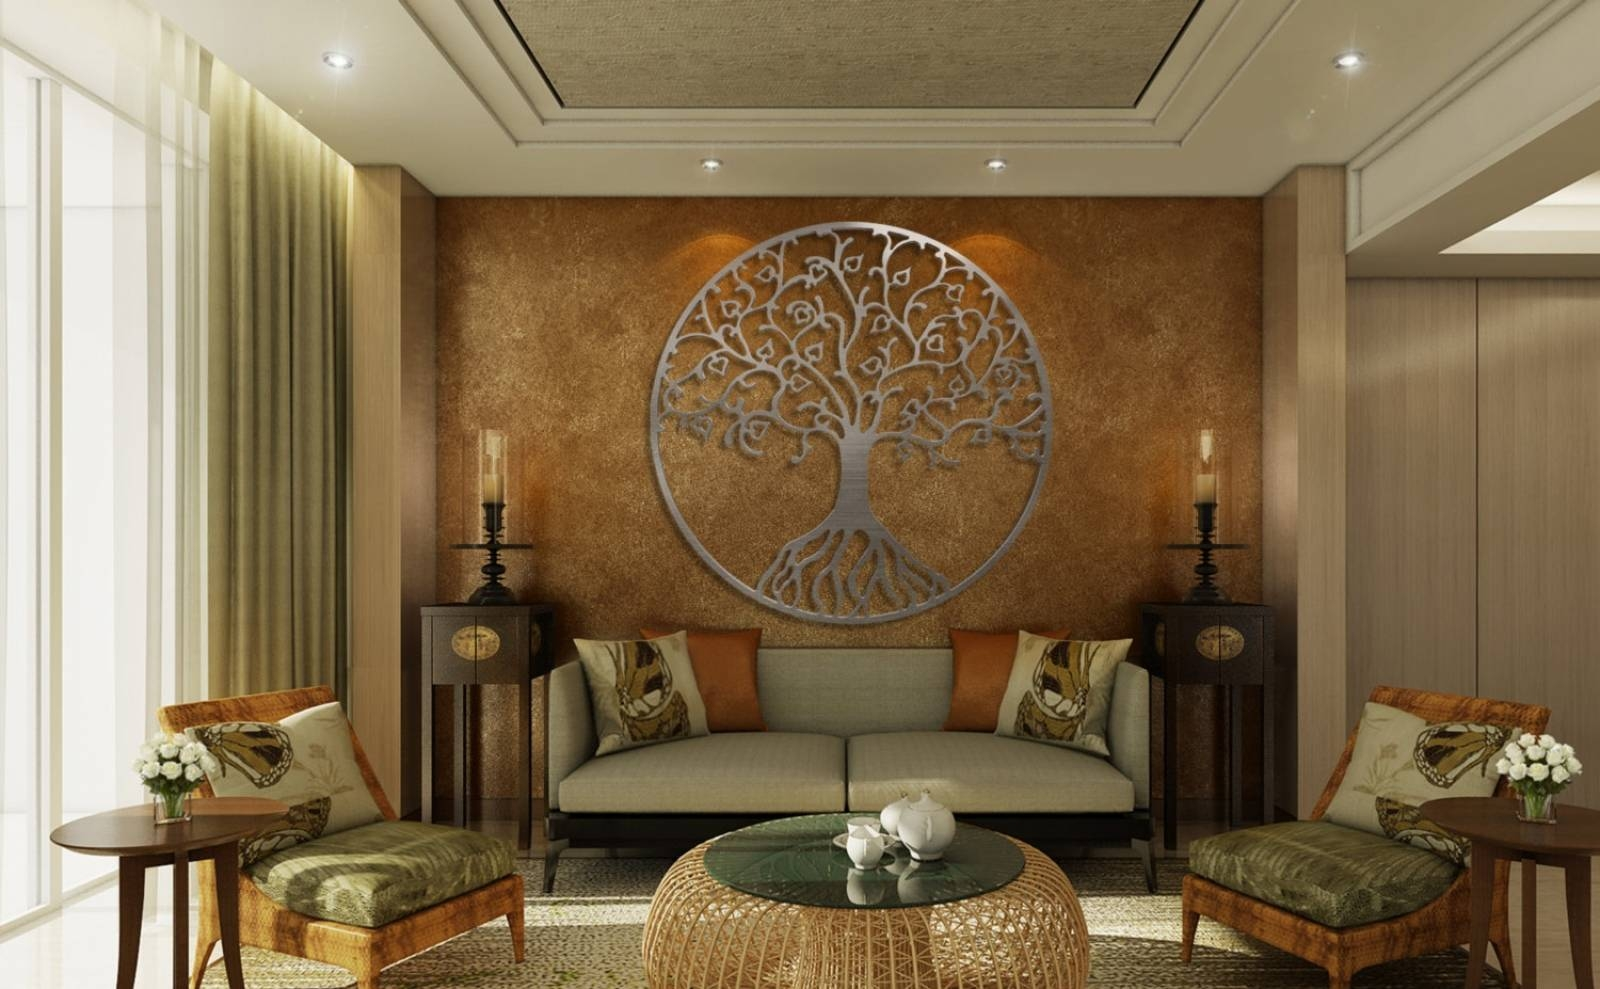 Tree Of Life 3D Metal Wall Art Sculpture (Circular) | Arte & Metal Intended For Most Up To Date 3D Metal Wall Art (View 13 of 20)